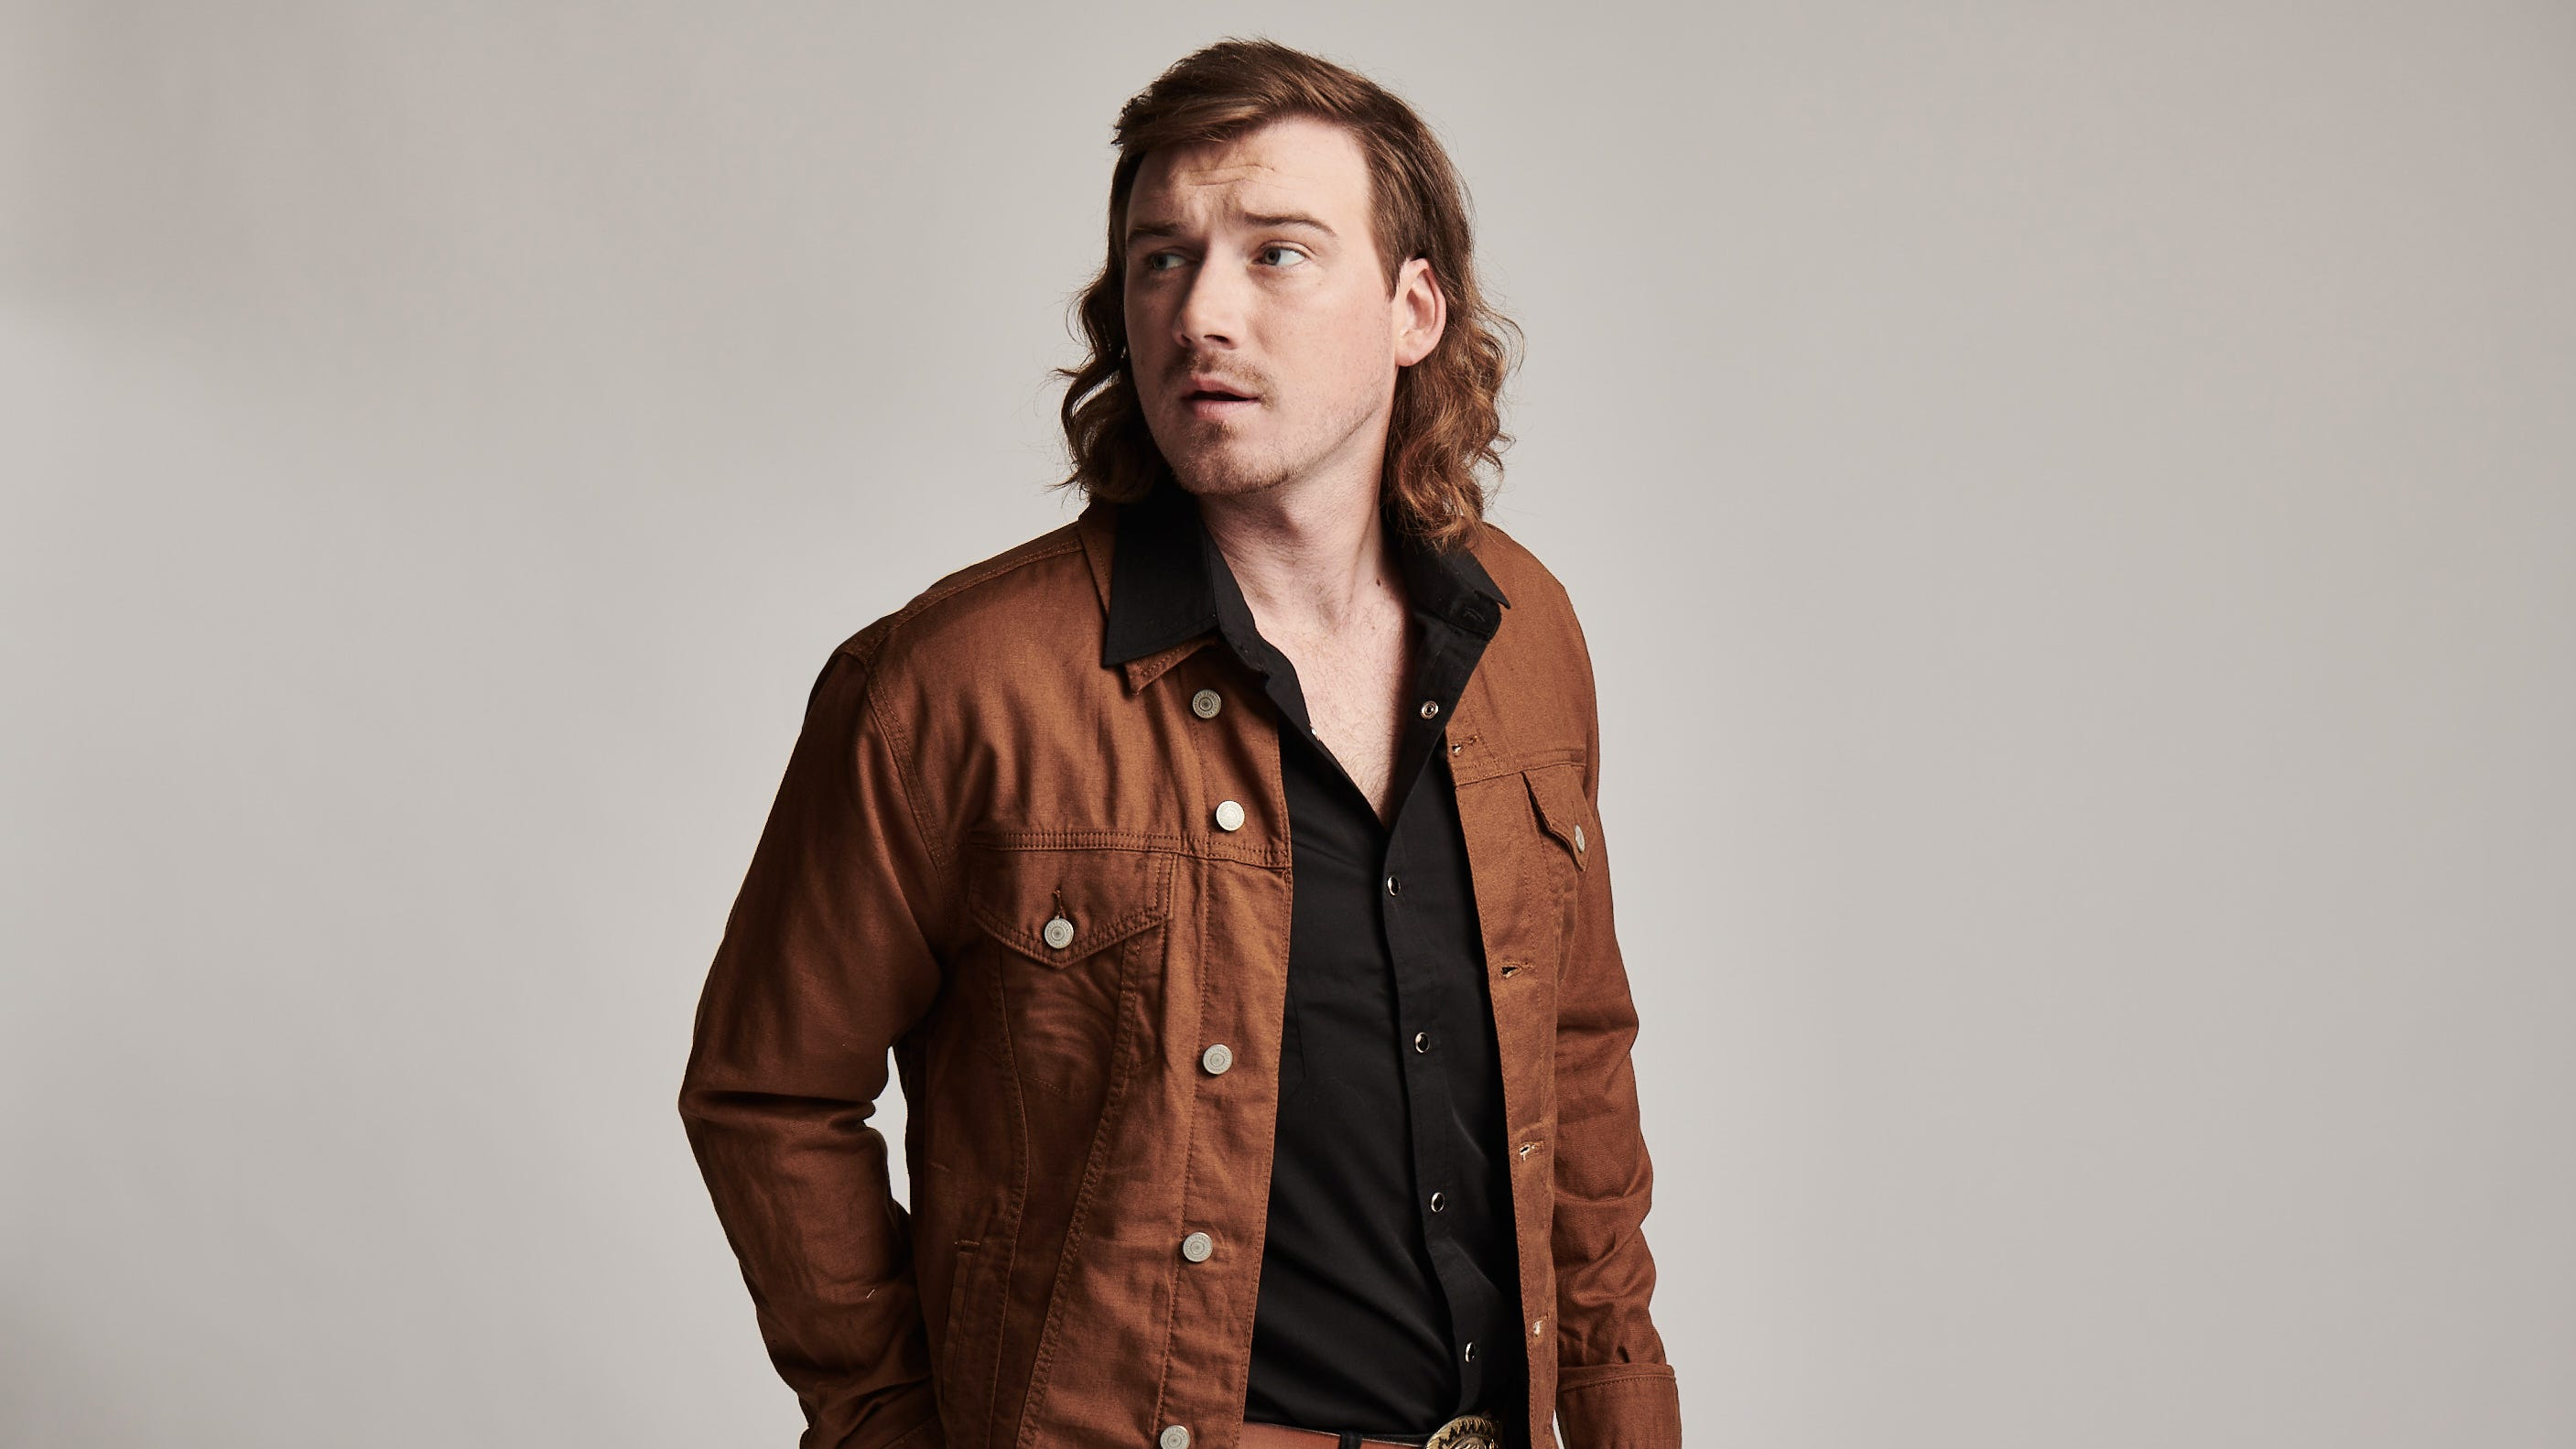 Morgan Wallen attends the 66th Annual BMI Country Awards